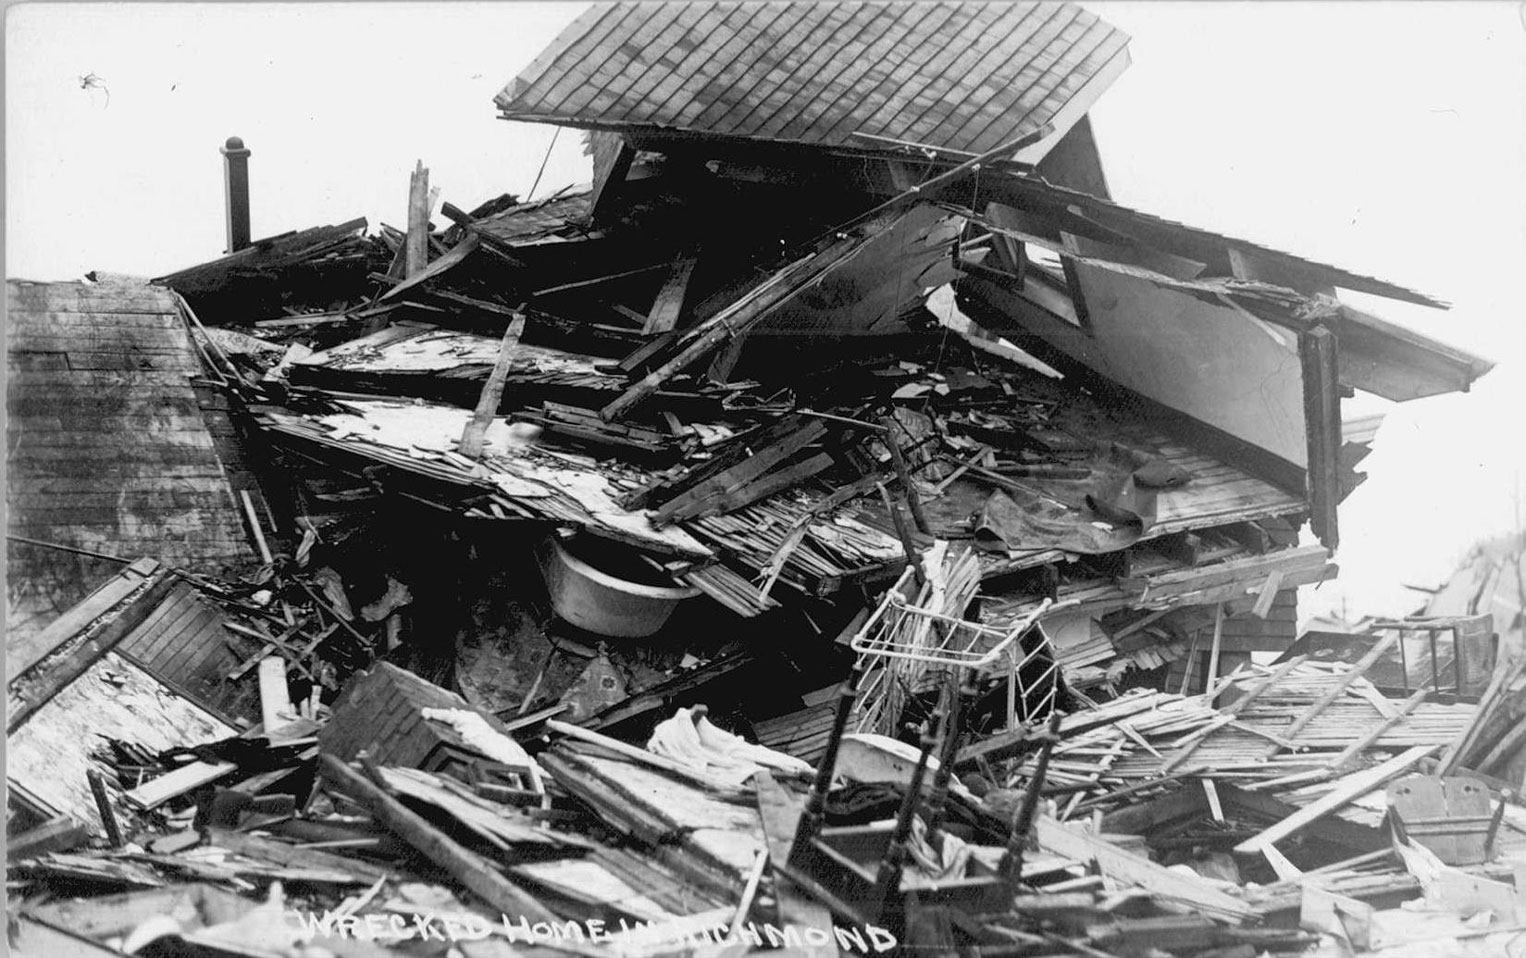 The photos above depict wreckage in Richmond, the area of Halifax obliterated by the explosion on December 6, 1917.